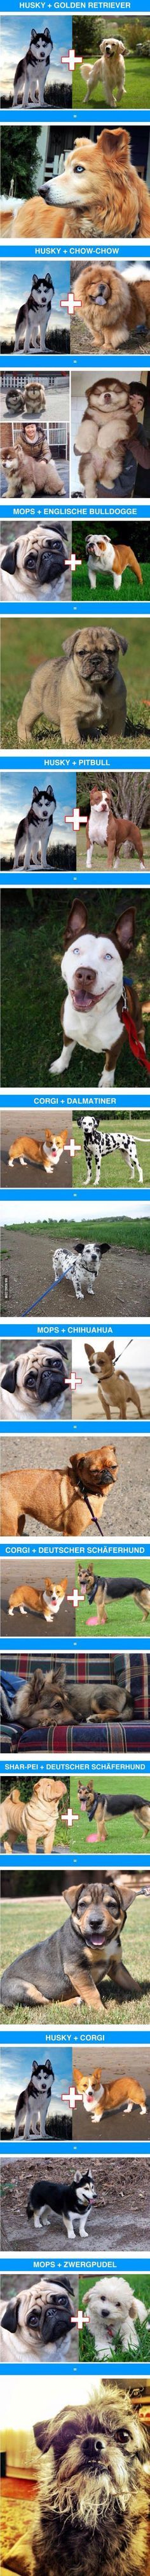 Some dog breeds mixed with others.